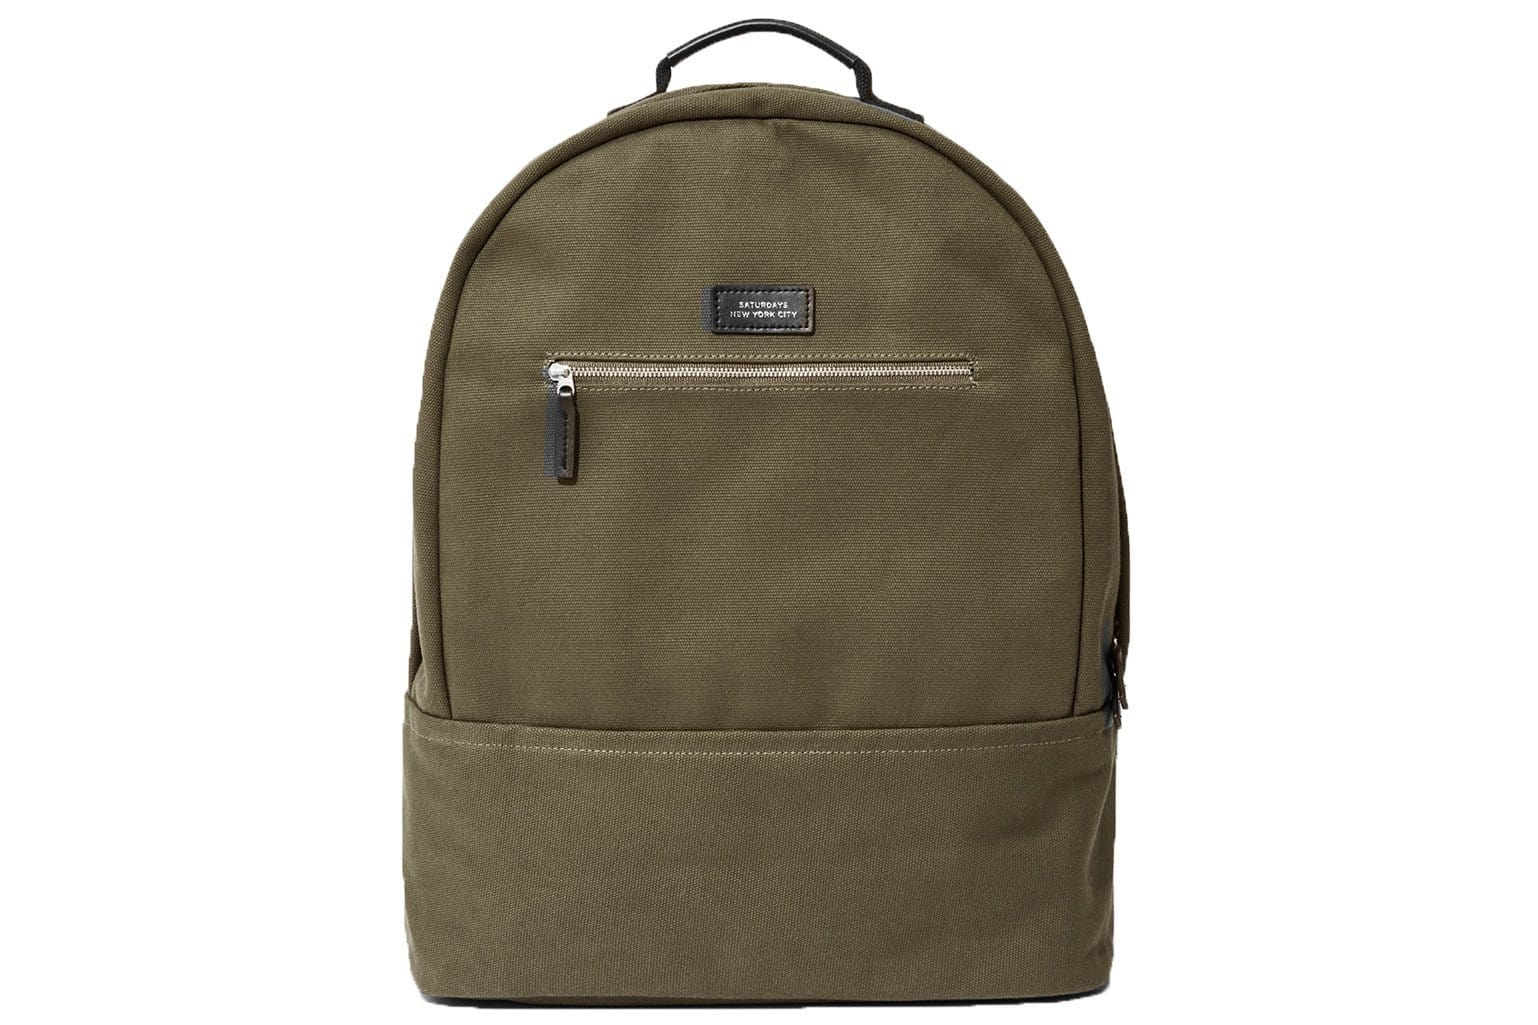 HANNES BACKPACK OLIVE BAGS SATURDAYS NYC OLIVE OS M21801HN01